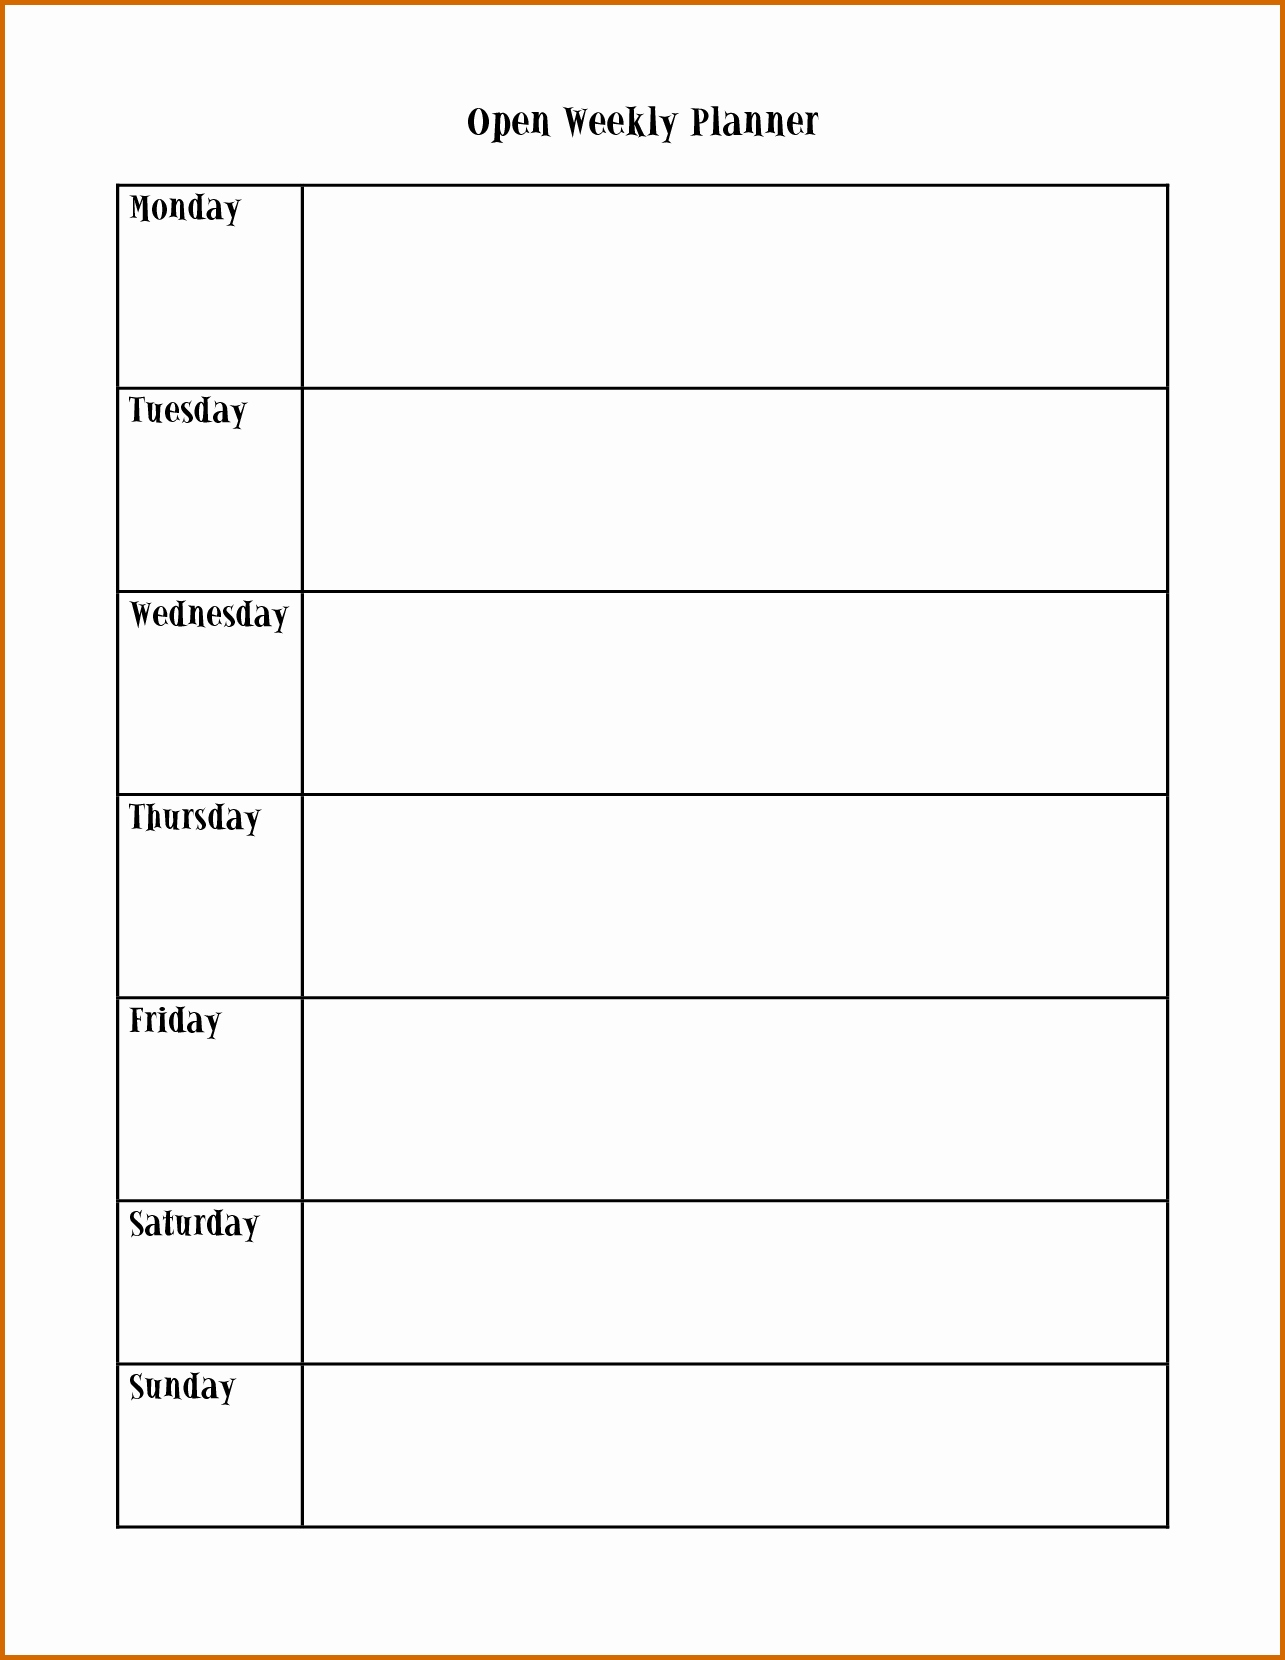 Schedule Template Monday Through Friday Weekly R Word Monthly | Smorad pertaining to Printable Appointment Calendars Monday Through Friday